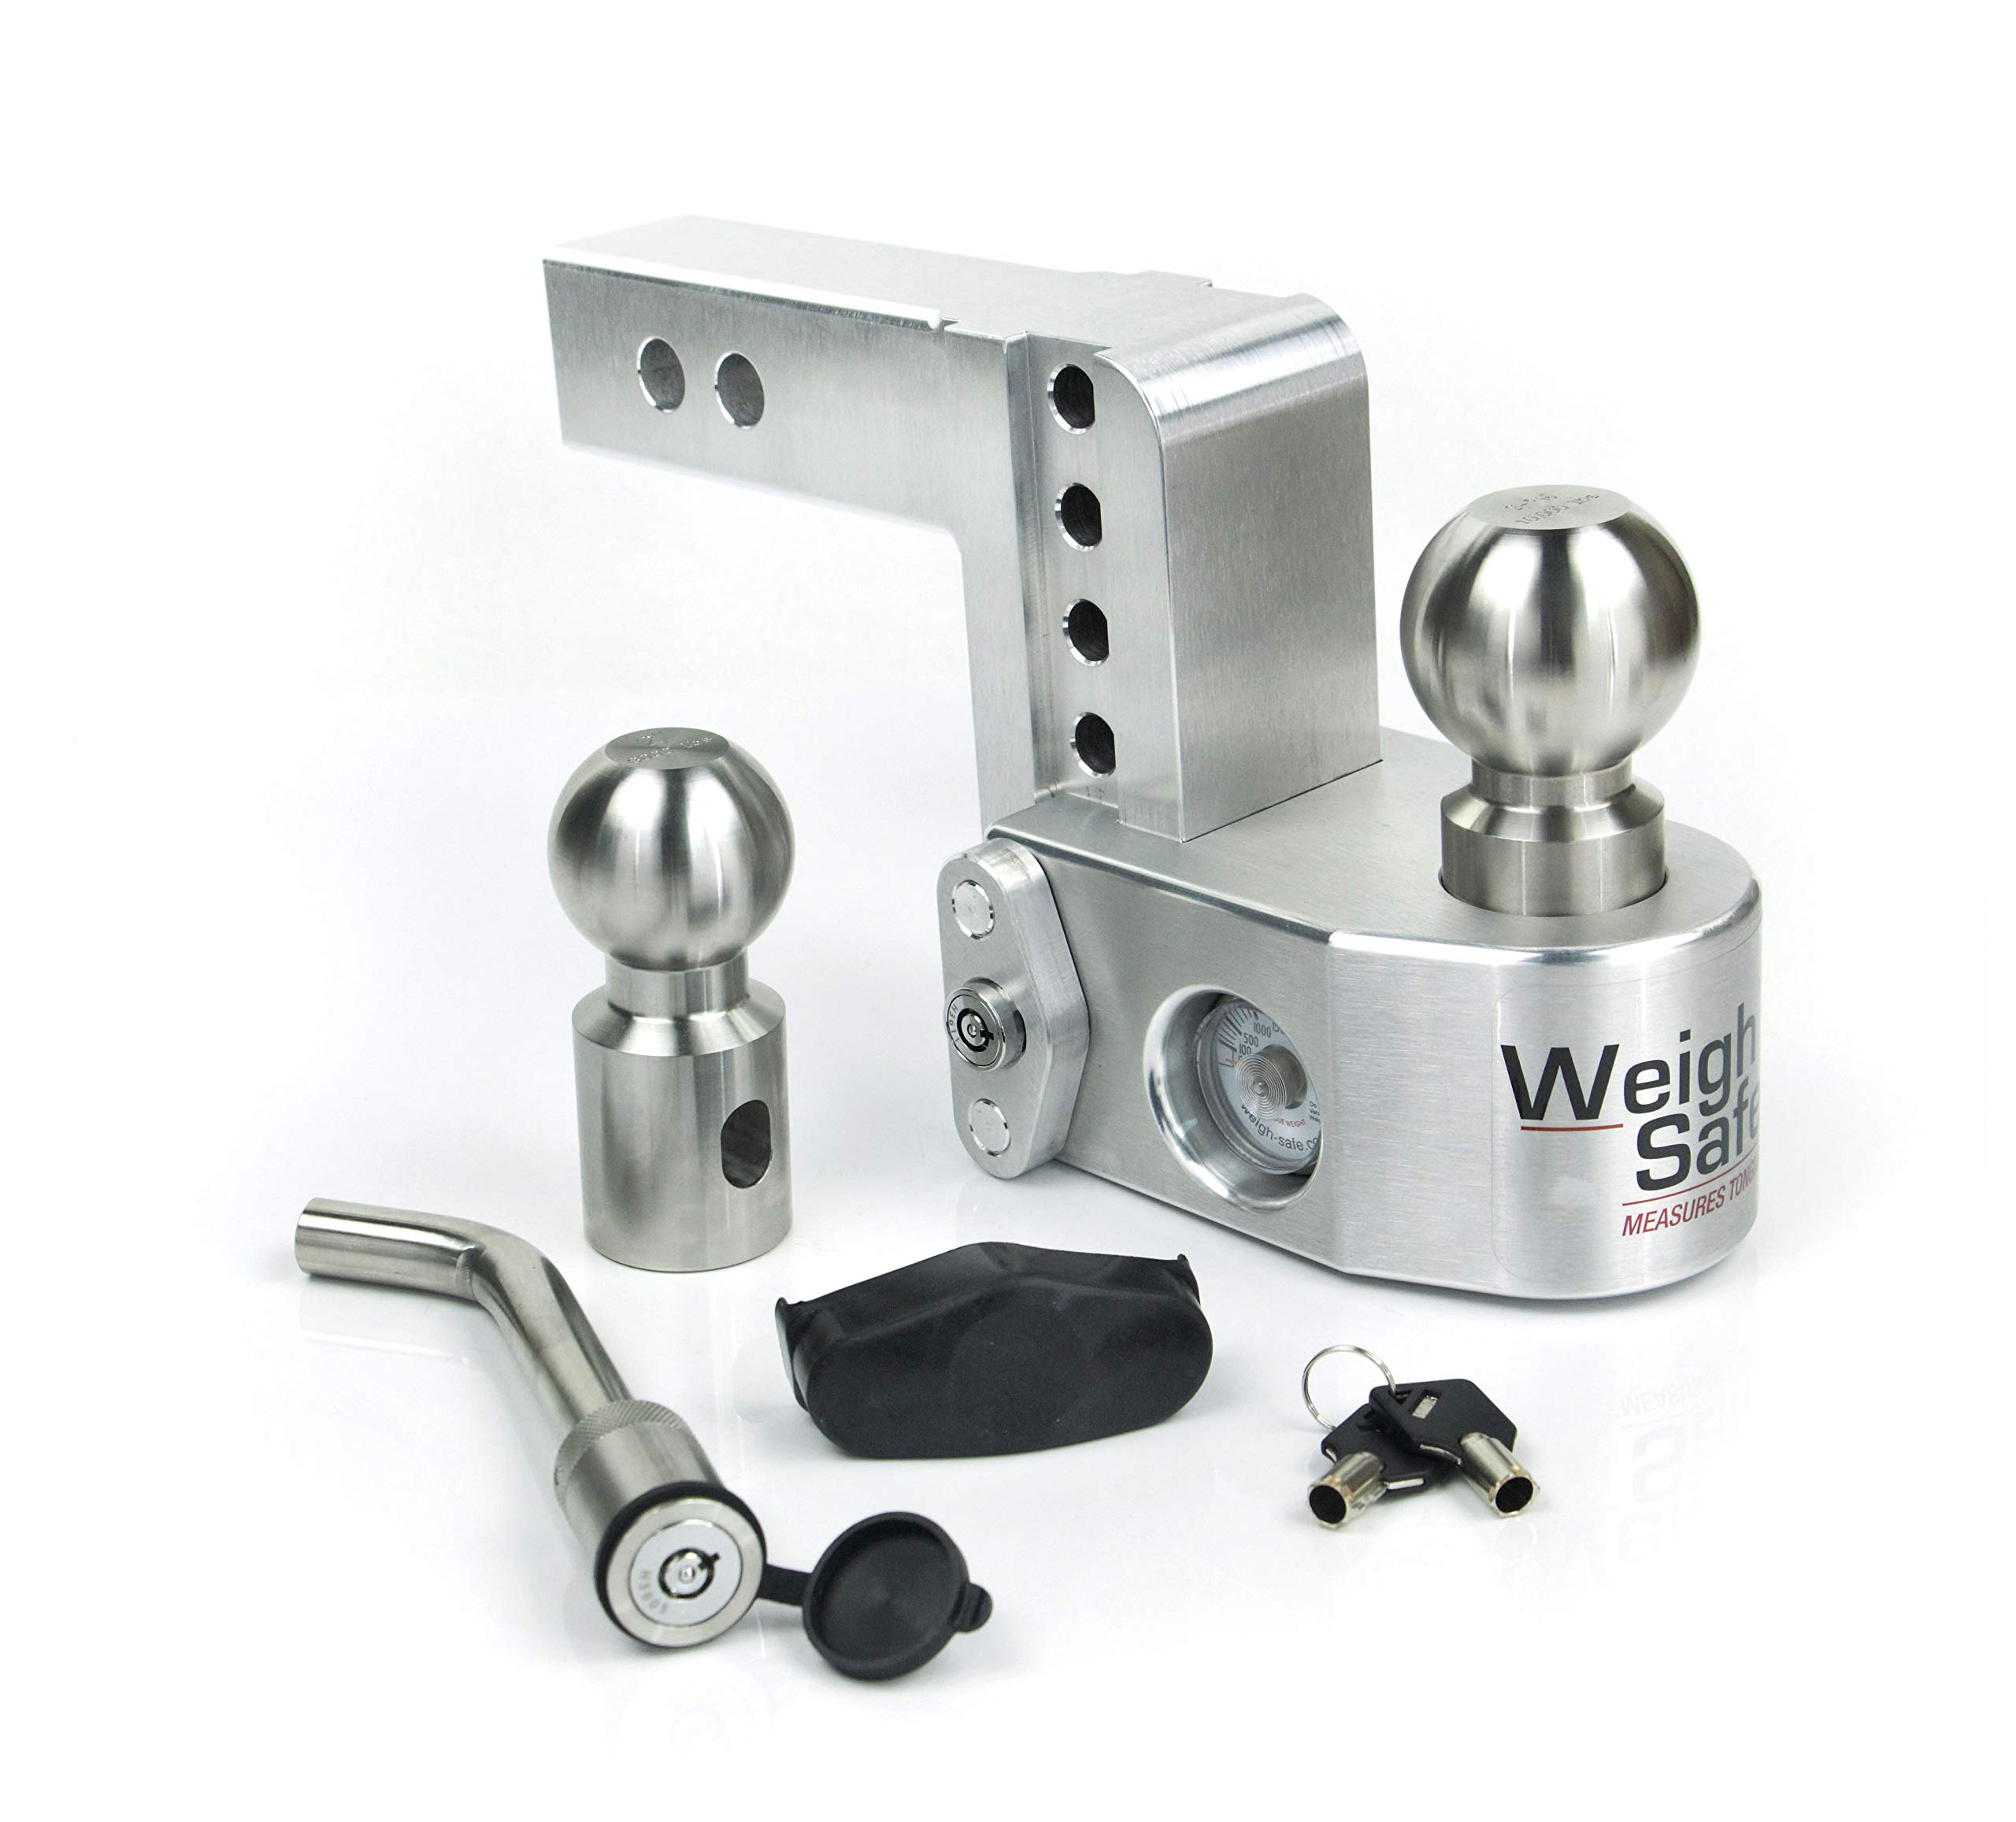 Weigh Safe WS4-2-KA, 4'' Drop Hitch w/ 2'' Shank/Shaft - Adjustable Aluminum Trailer Hitch & Ball Mount w/Built-in Scale, 2 Stainless Steel Balls (2'' & 2-5/16'') Keyed Alike Key Lock and Hitch Pin by Weigh Safe